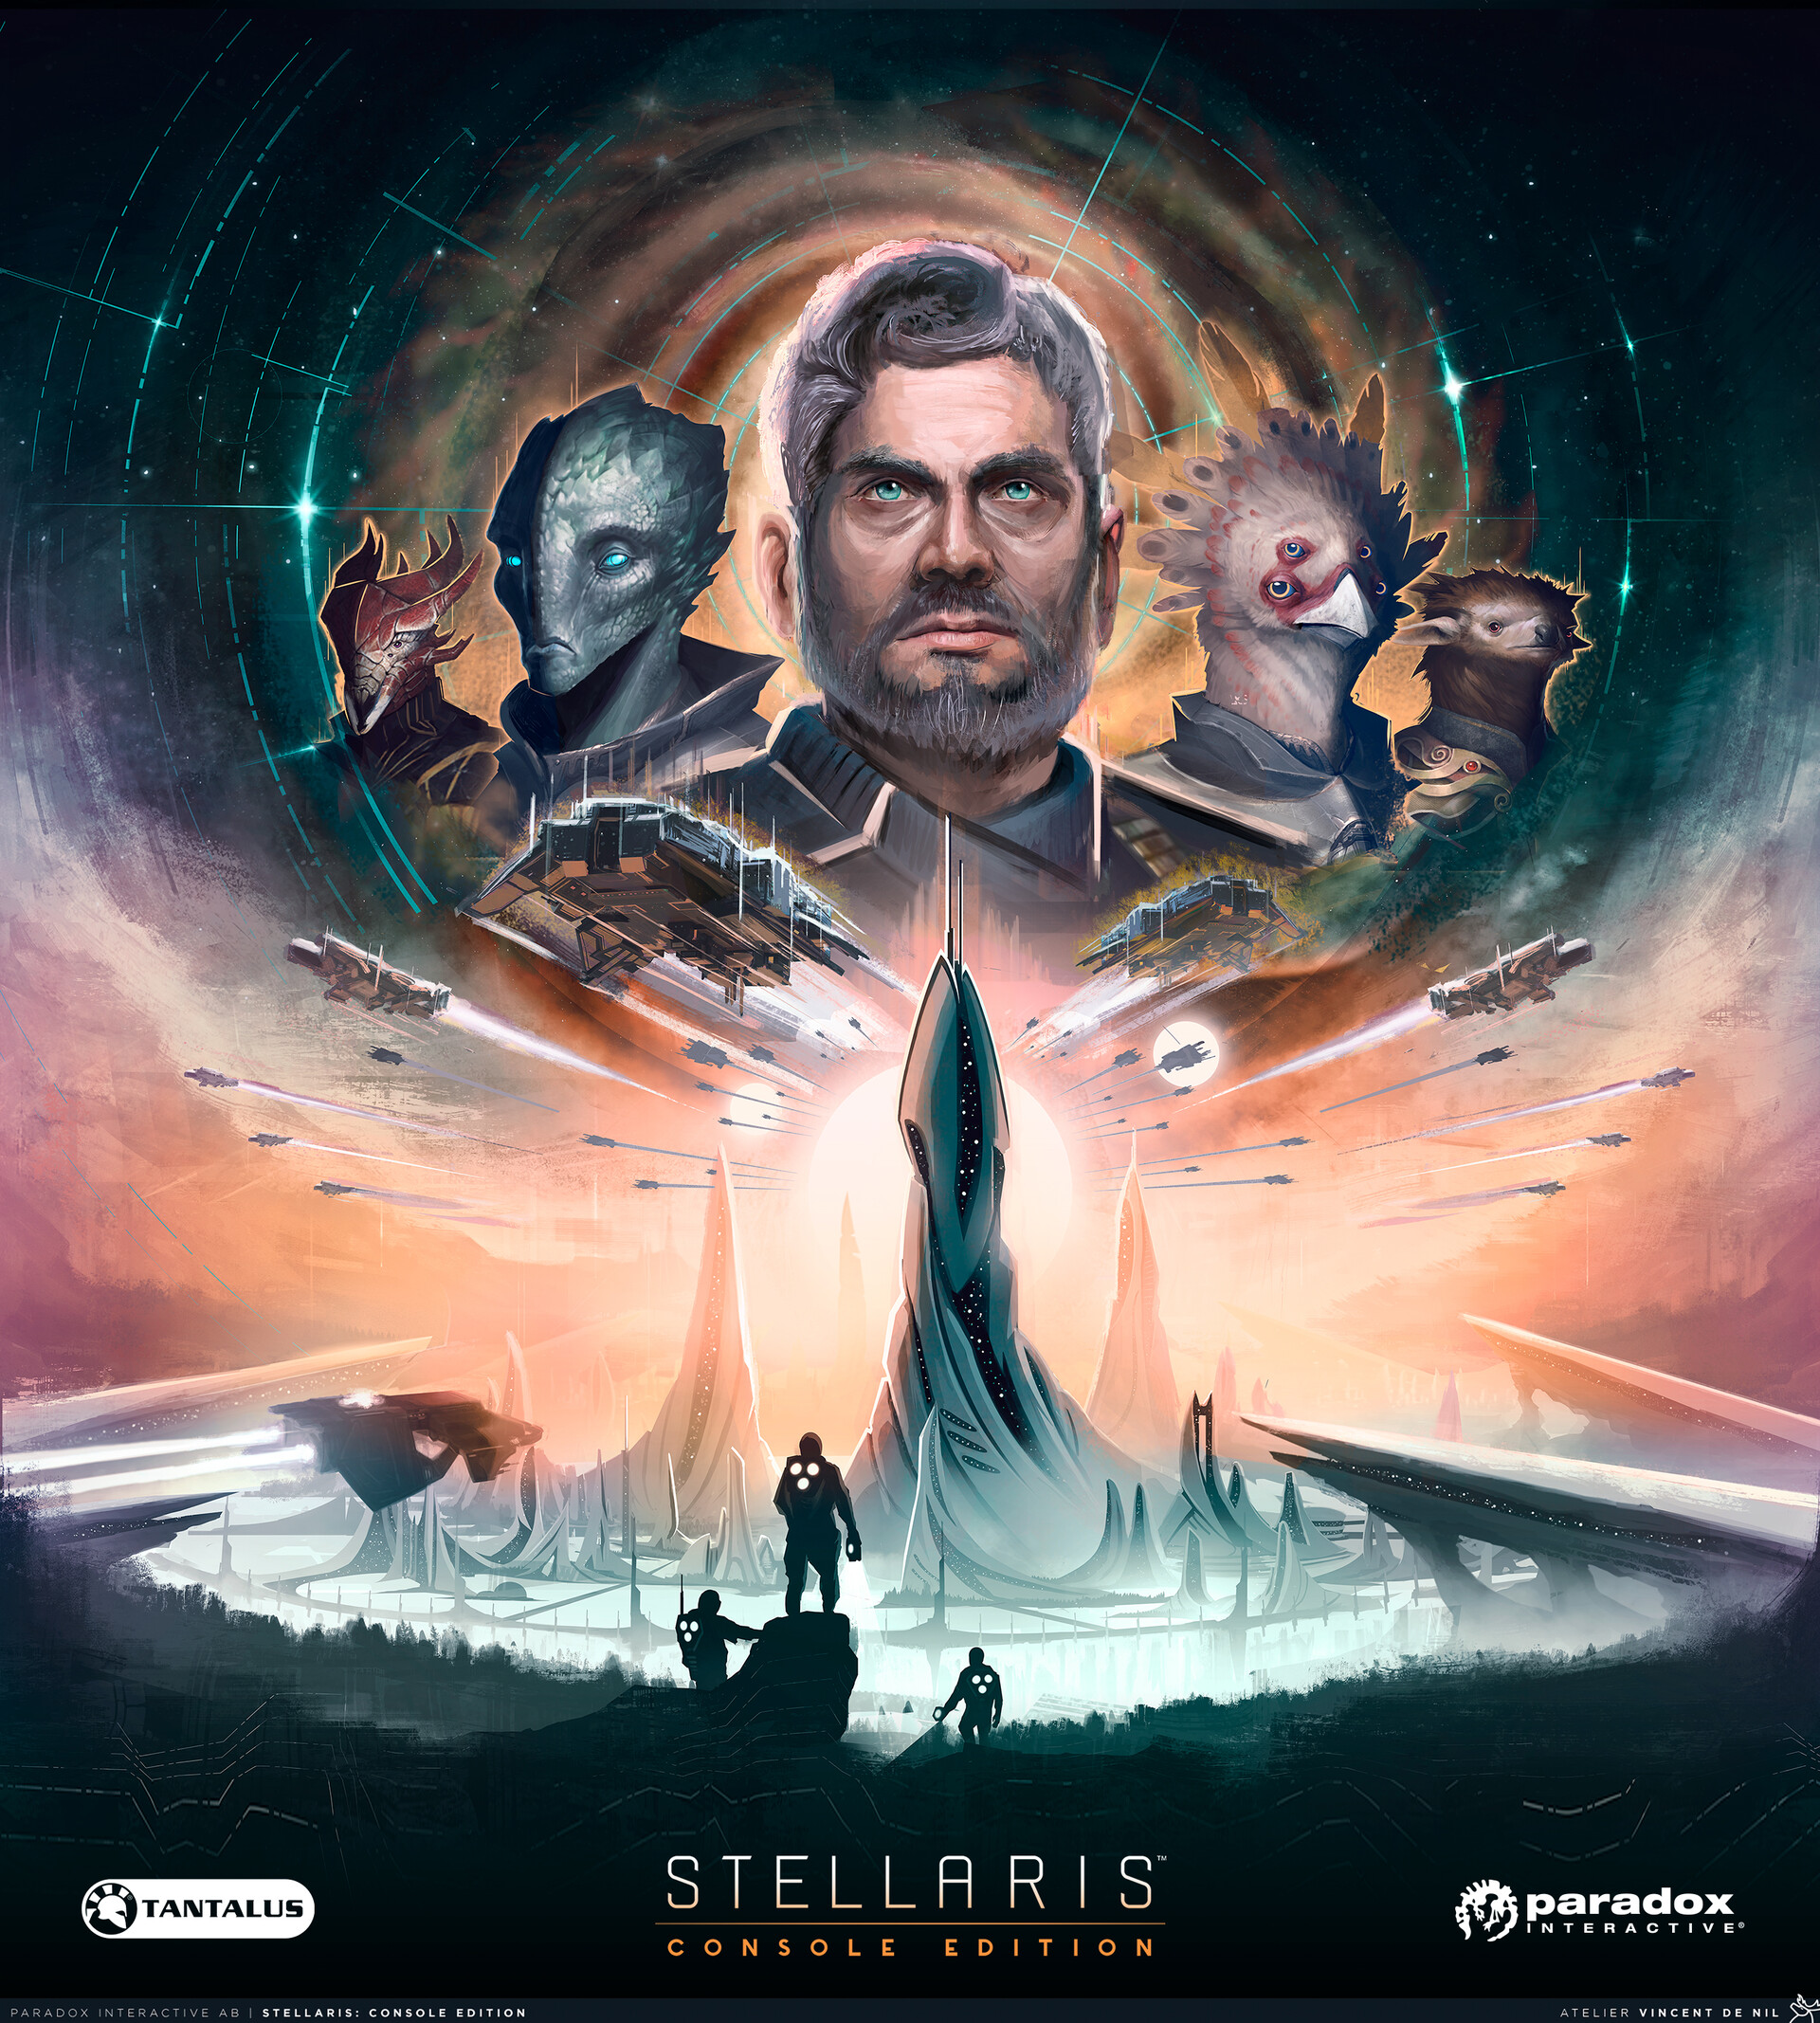 Stellaris Console Edition review – a grand effort